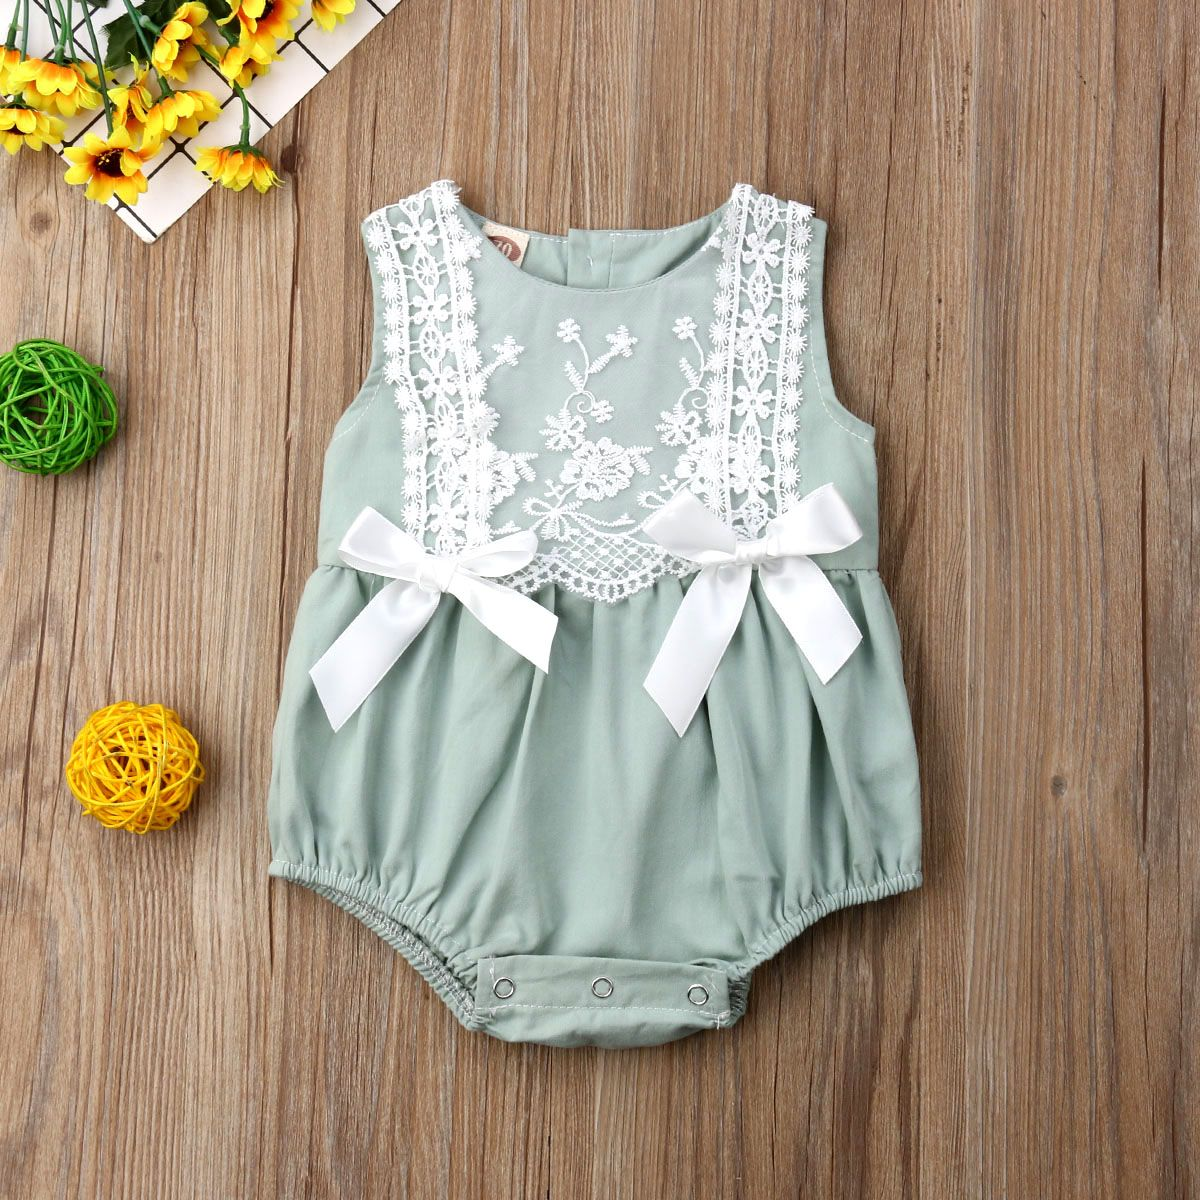 Newborn Babies Online Shopping Online Shop 2019 New Infant Newborn Baby Girls Clothing Lace